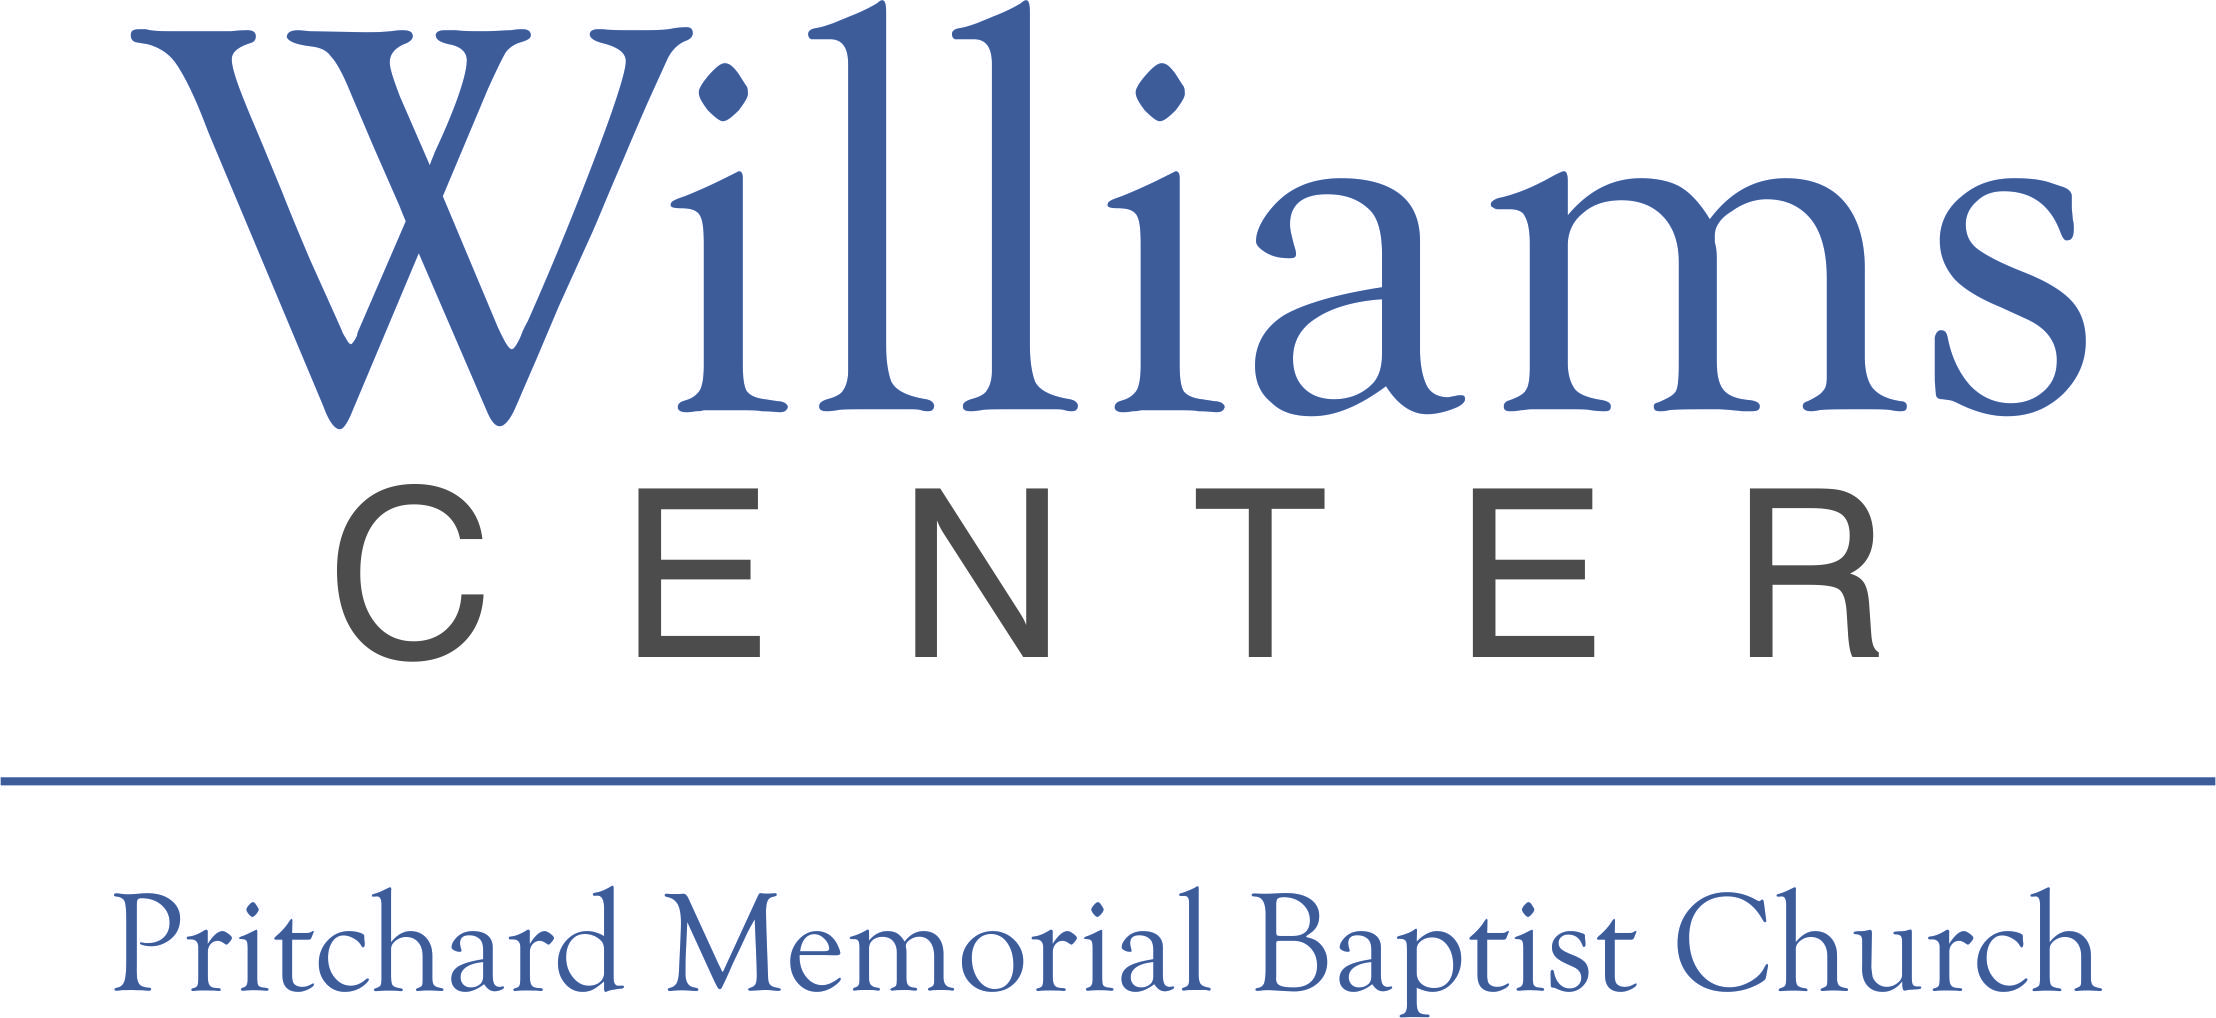 Pritchard Memorial Baptist Church Williams Center Logo